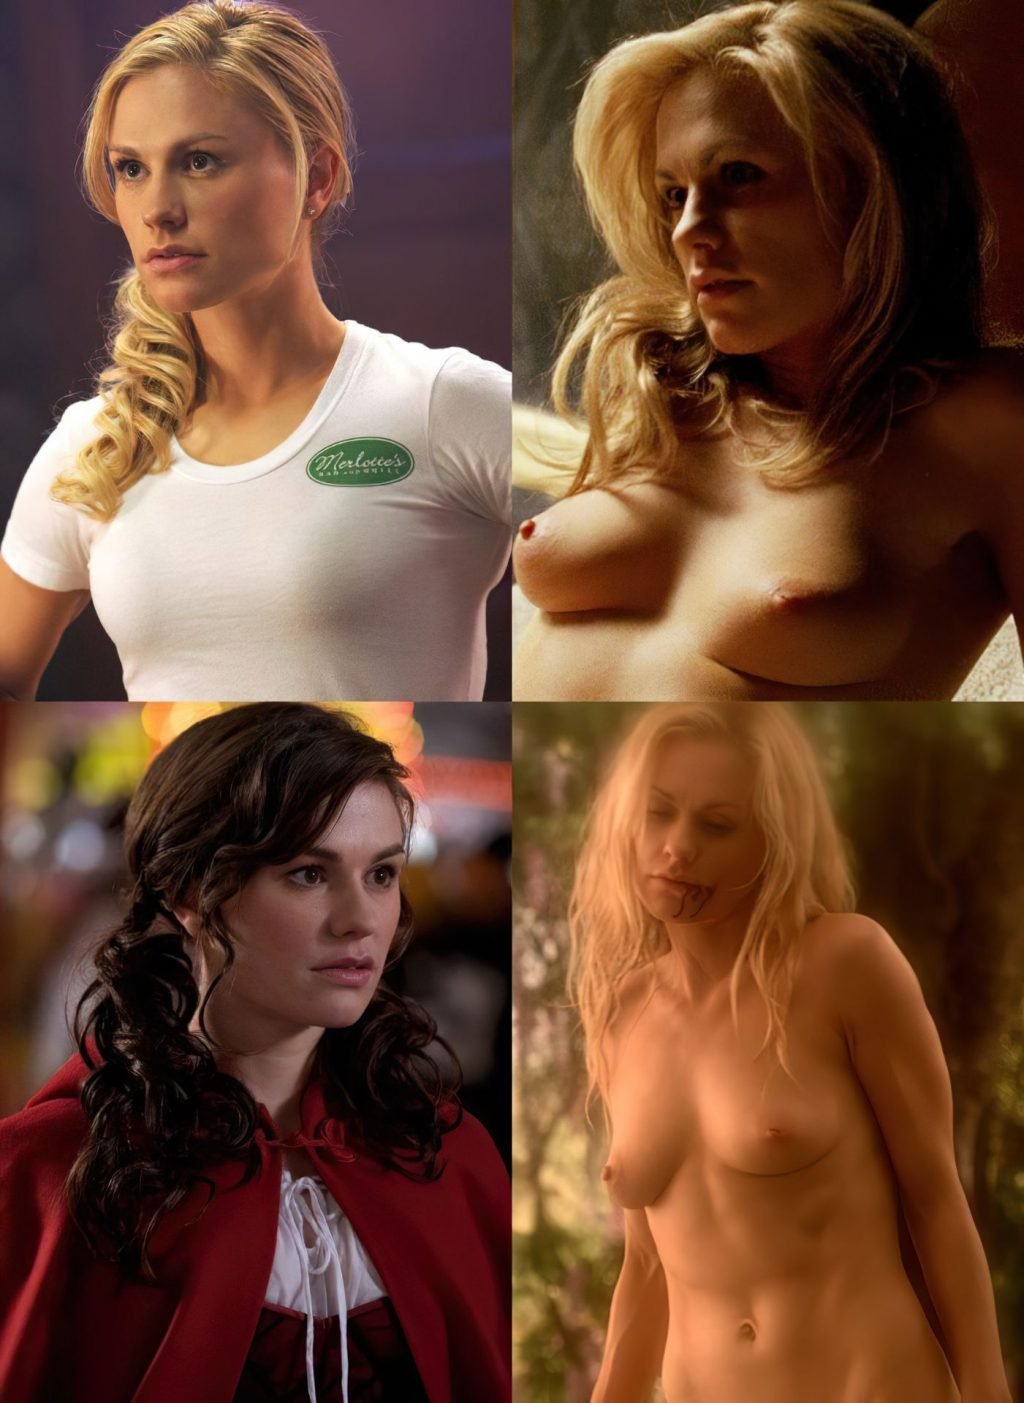 Anna Paquin On/Off (1 Collage Photo)